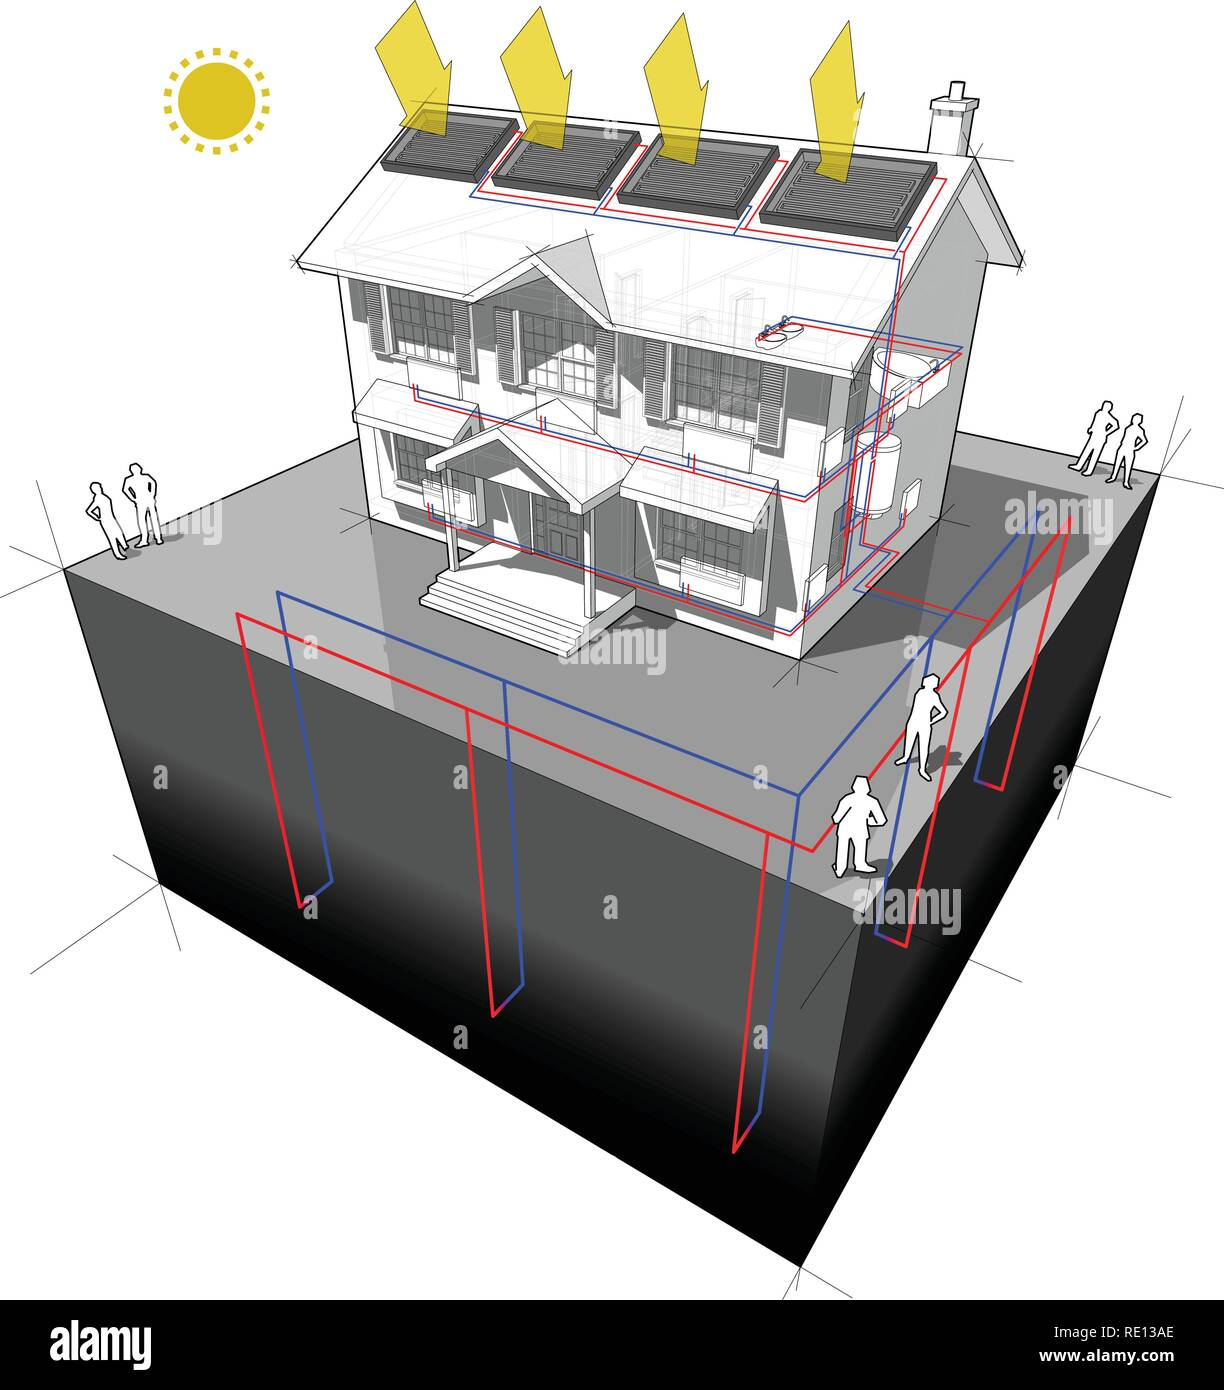 diagram of a classic colonial house with ground source heat pump and solar panels on the roof as source of energy for heating and radiators - Stock Vector